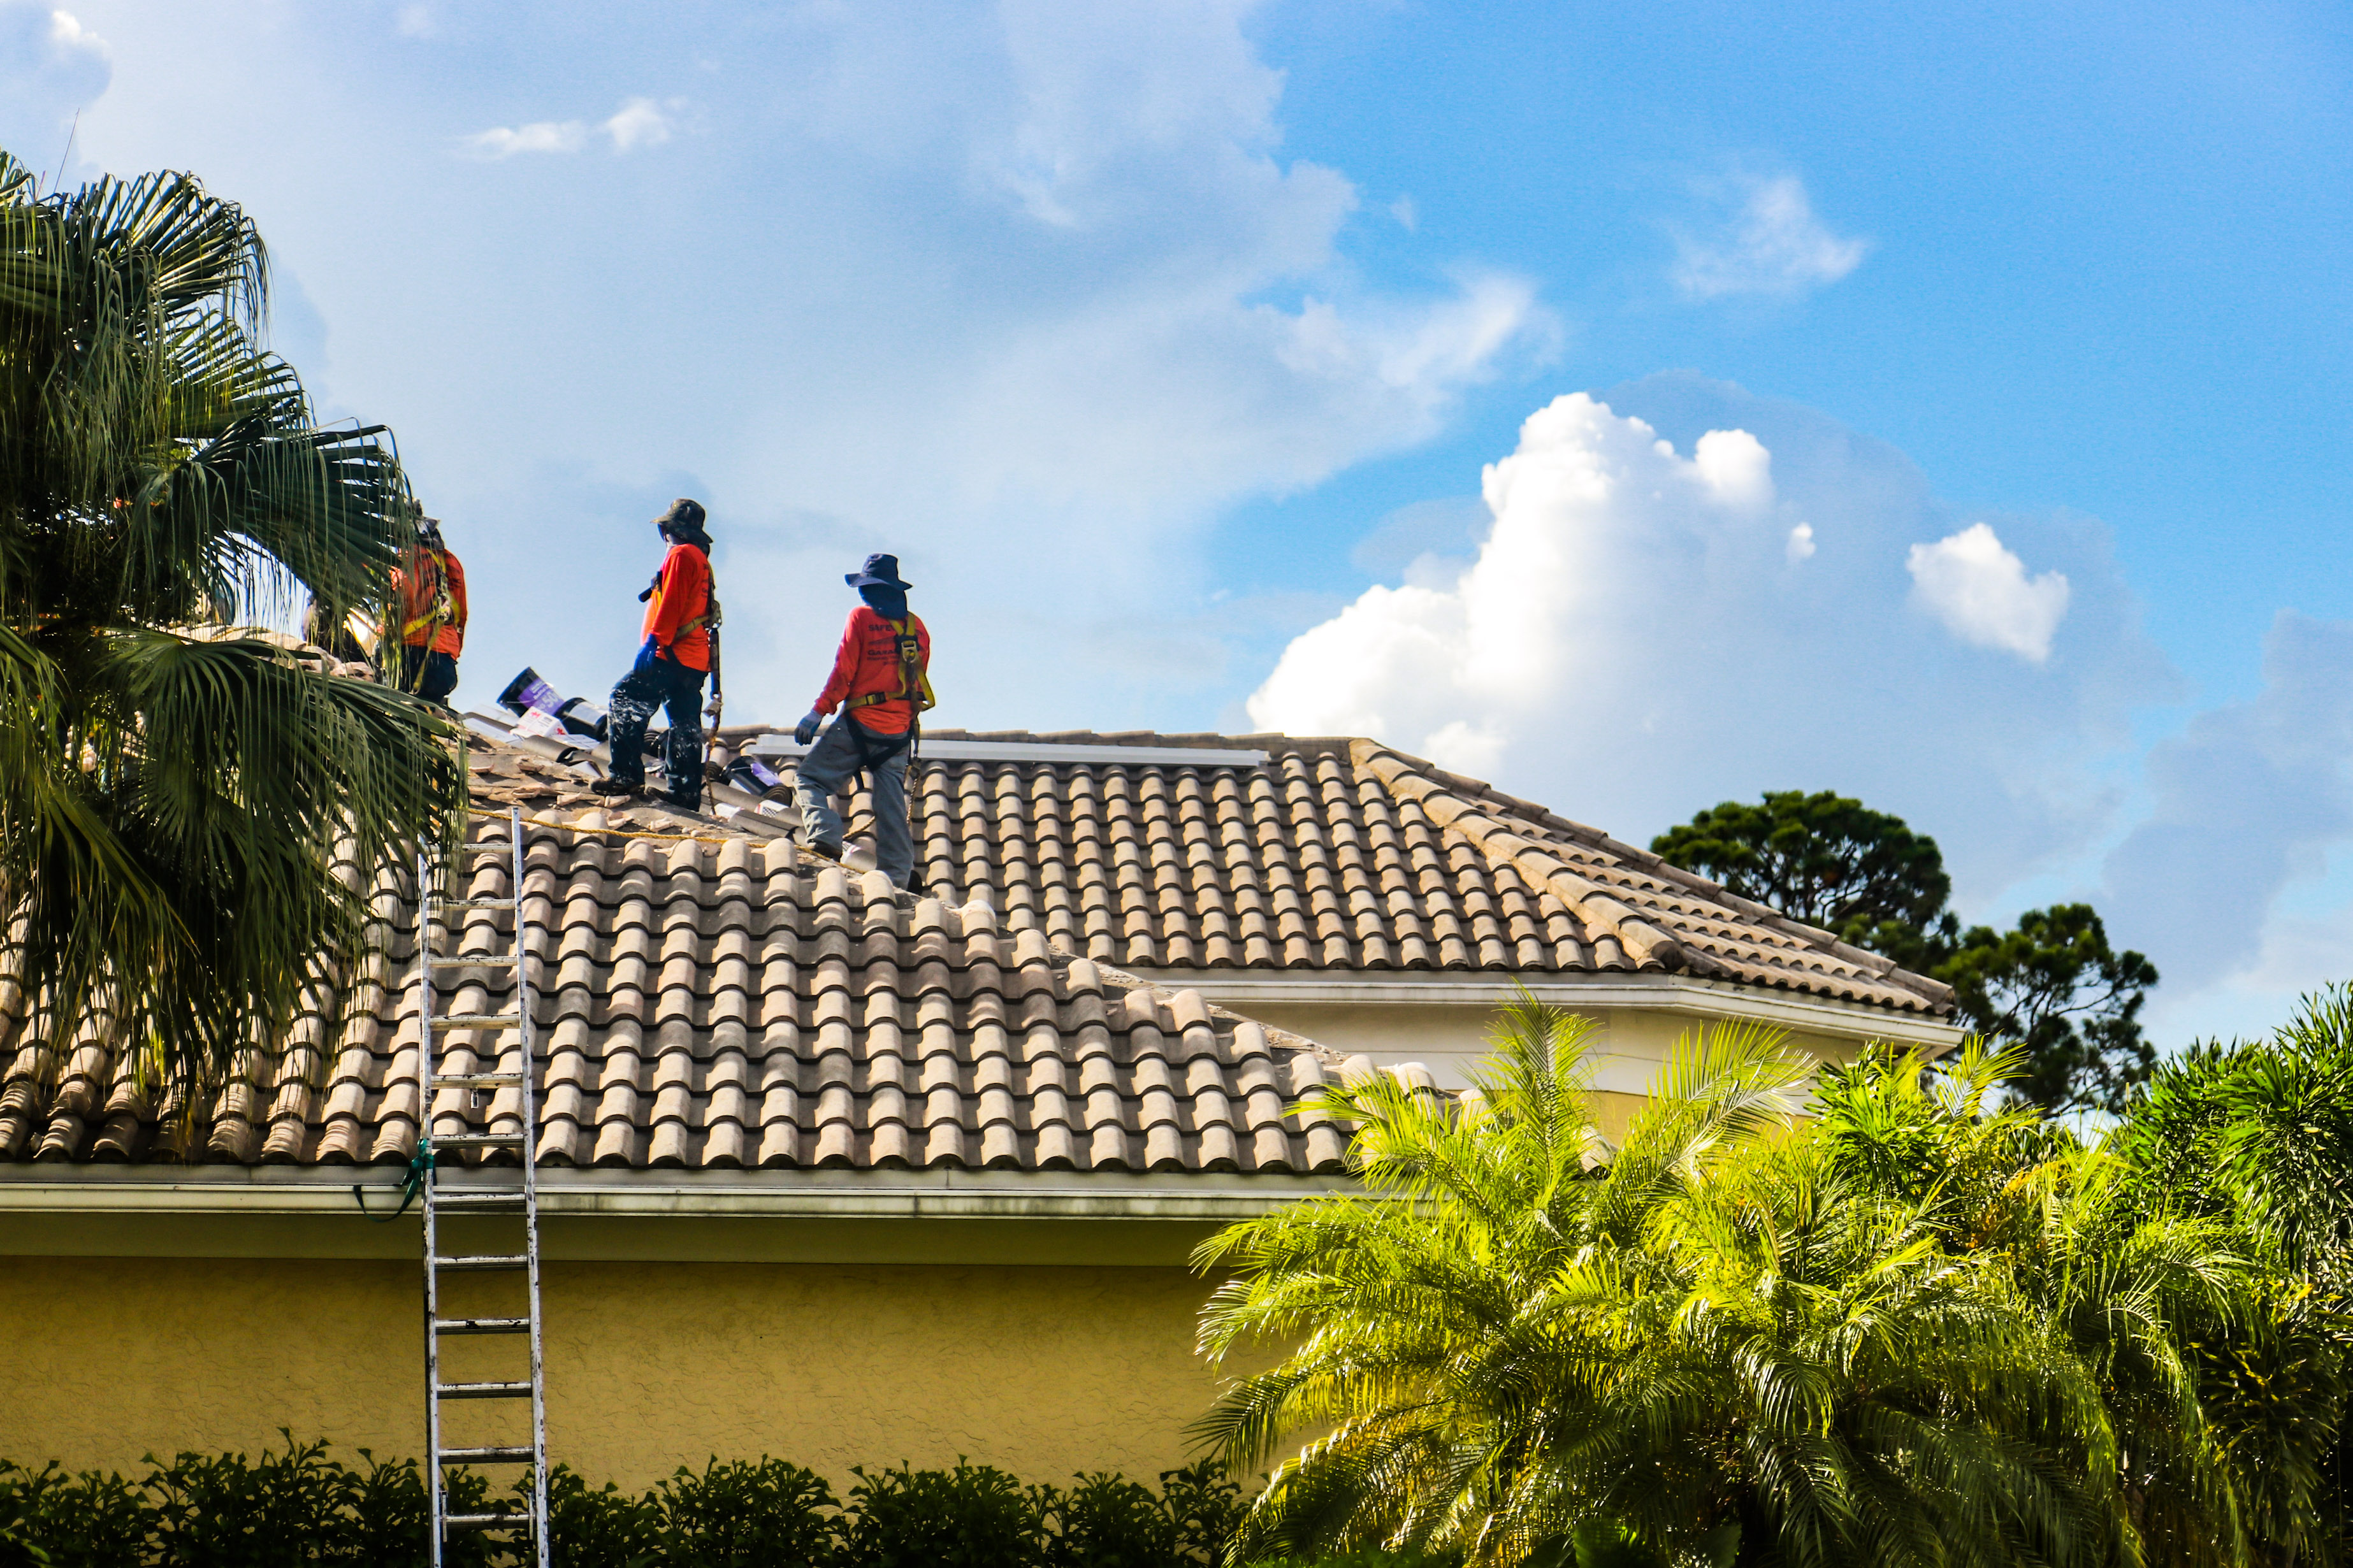 Garabar Roofing Employees on a Roof in Delray Beach Florida